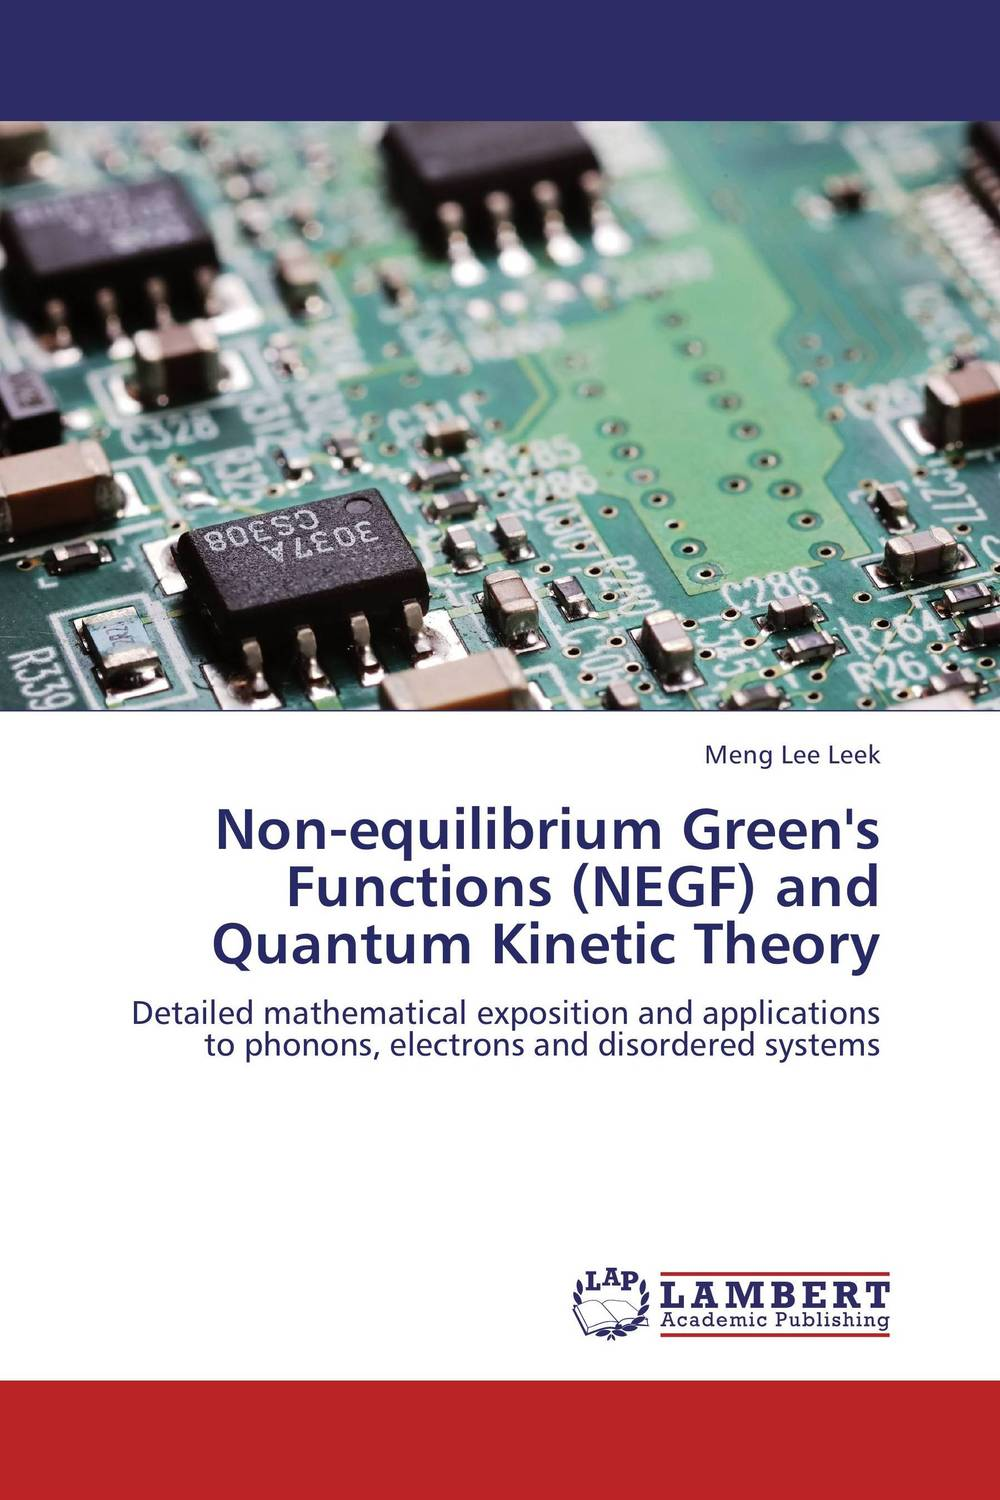 Non-equilibrium Green's Functions (NEGF) and Quantum Kinetic Theory quantum field theory and the standard model